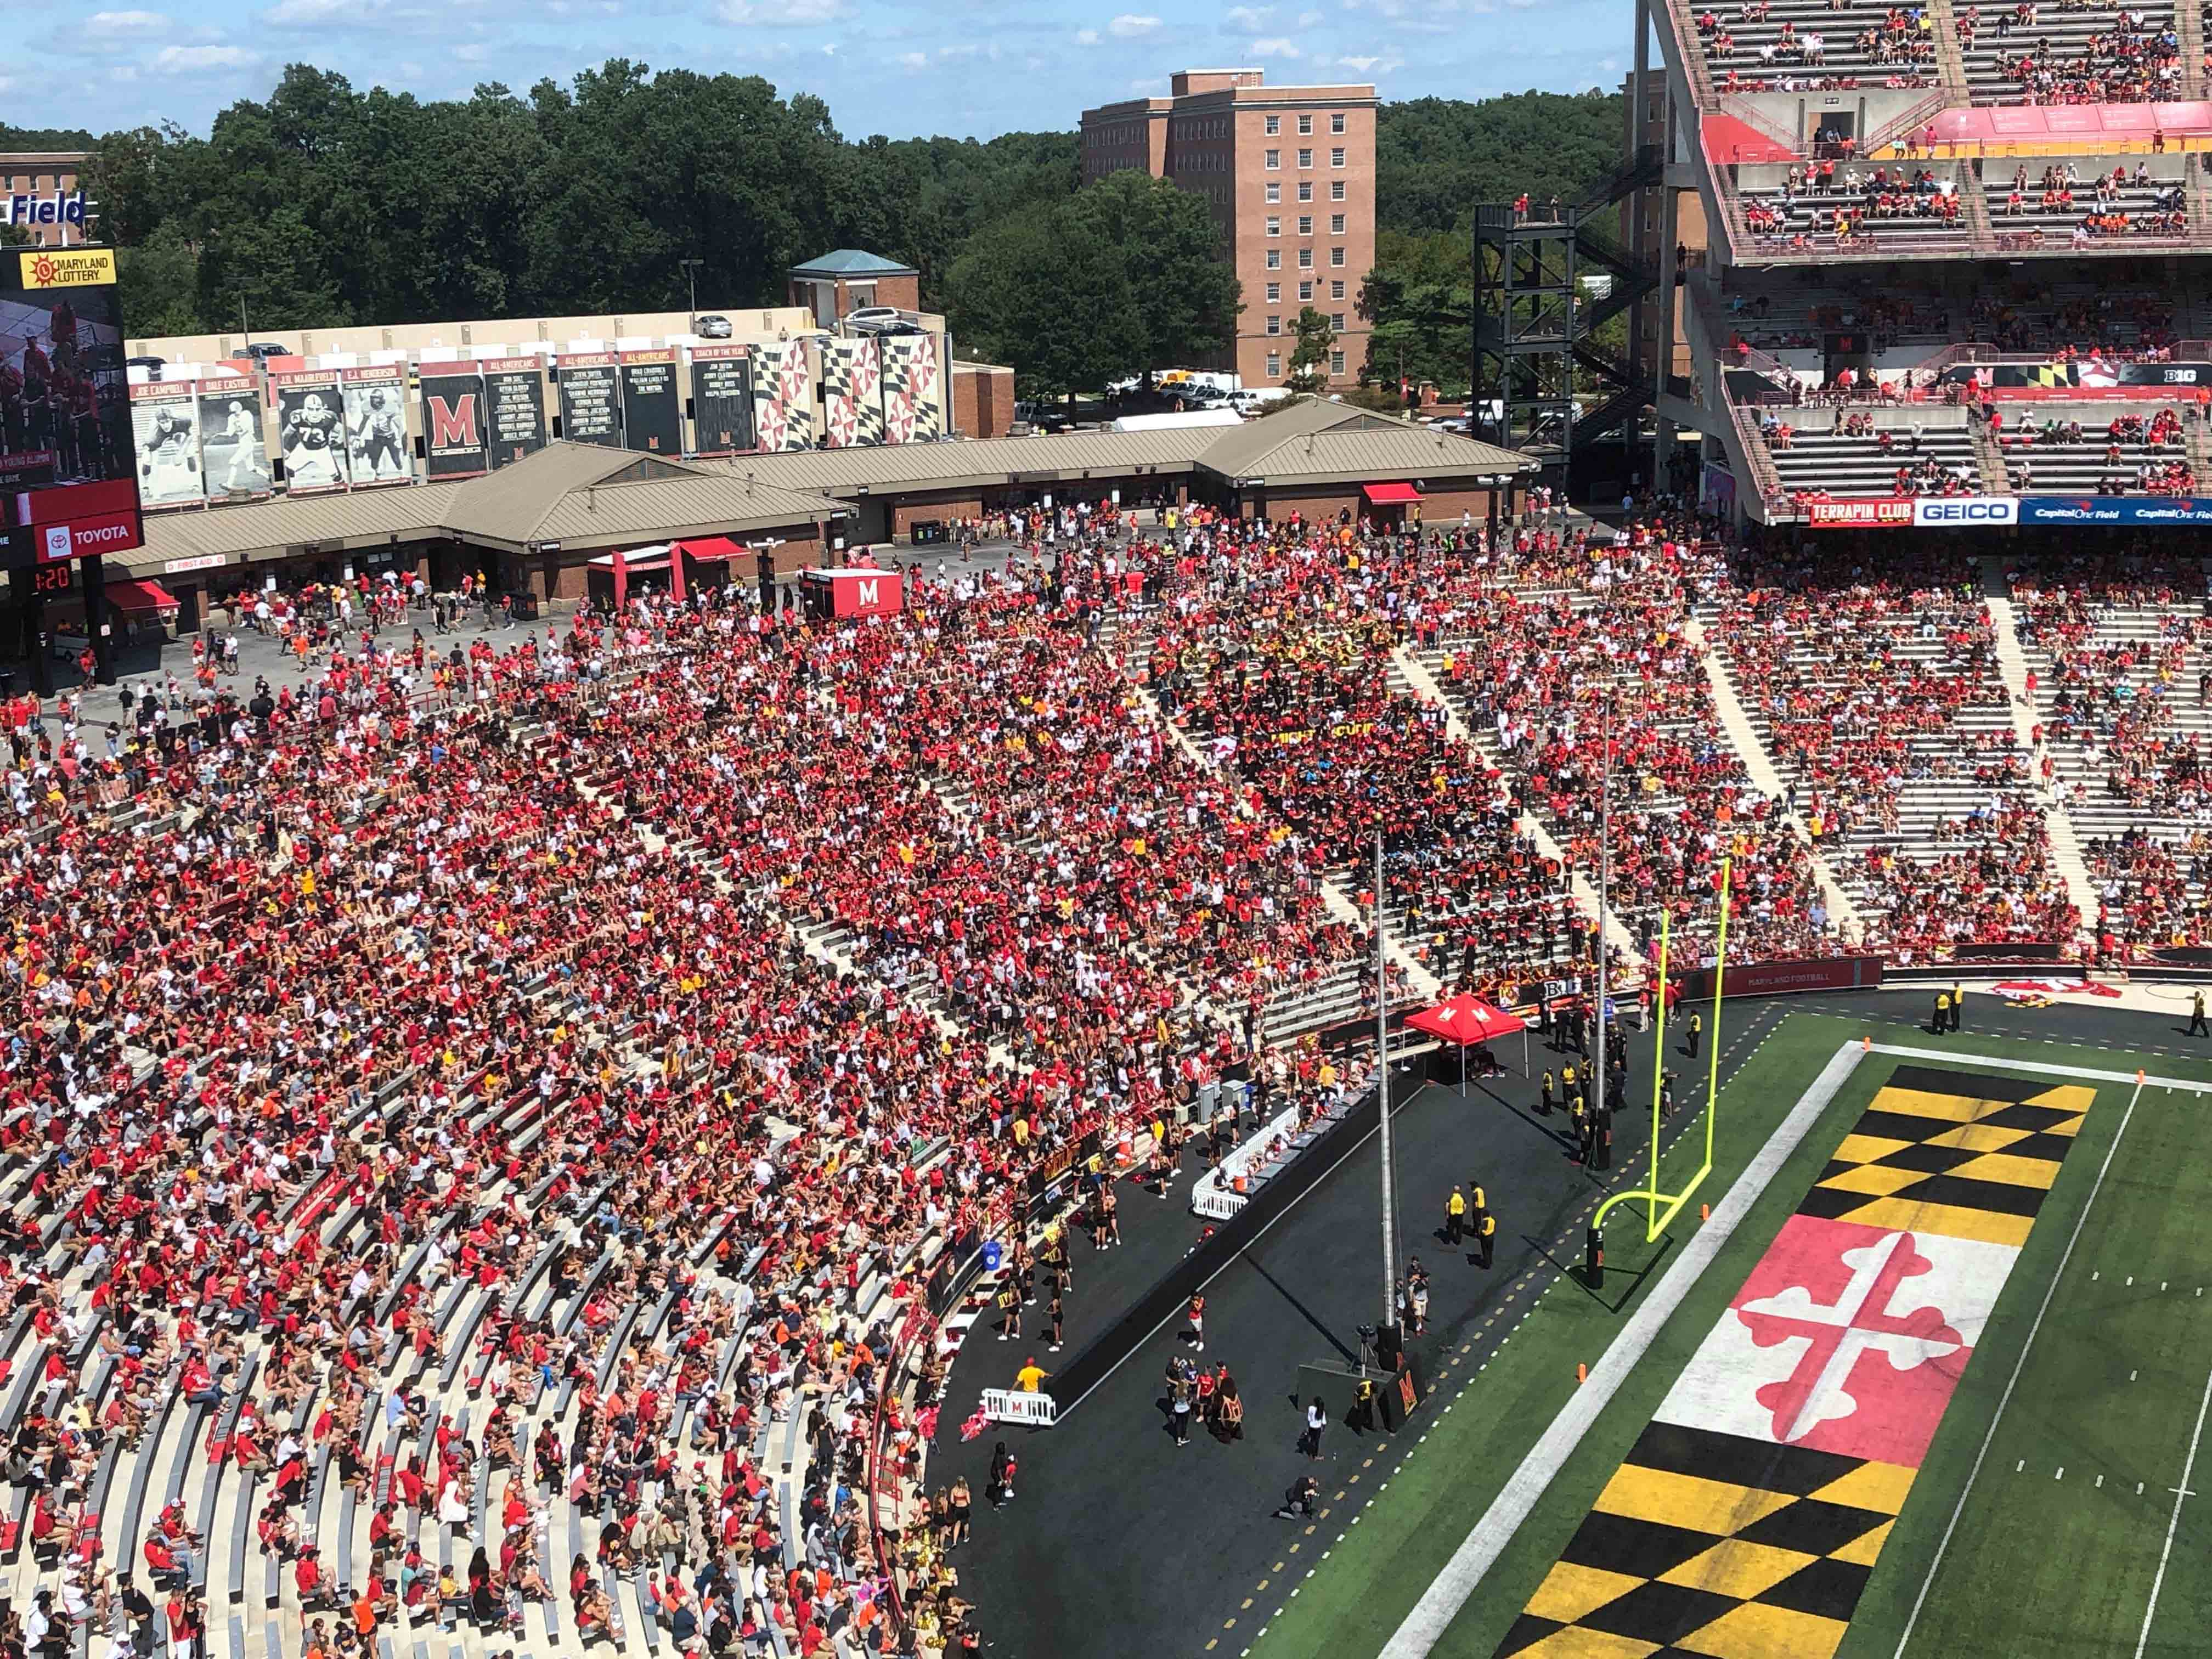 The stands at Maryland stadium are partially full as the Terps football team plays Syracuse on Sept. 7, 2019. As college football attendance has decreased in recent years, NCAA rules have allowed Maryland and other schools to report attendance figures that do not always match the number of fans in the stands.